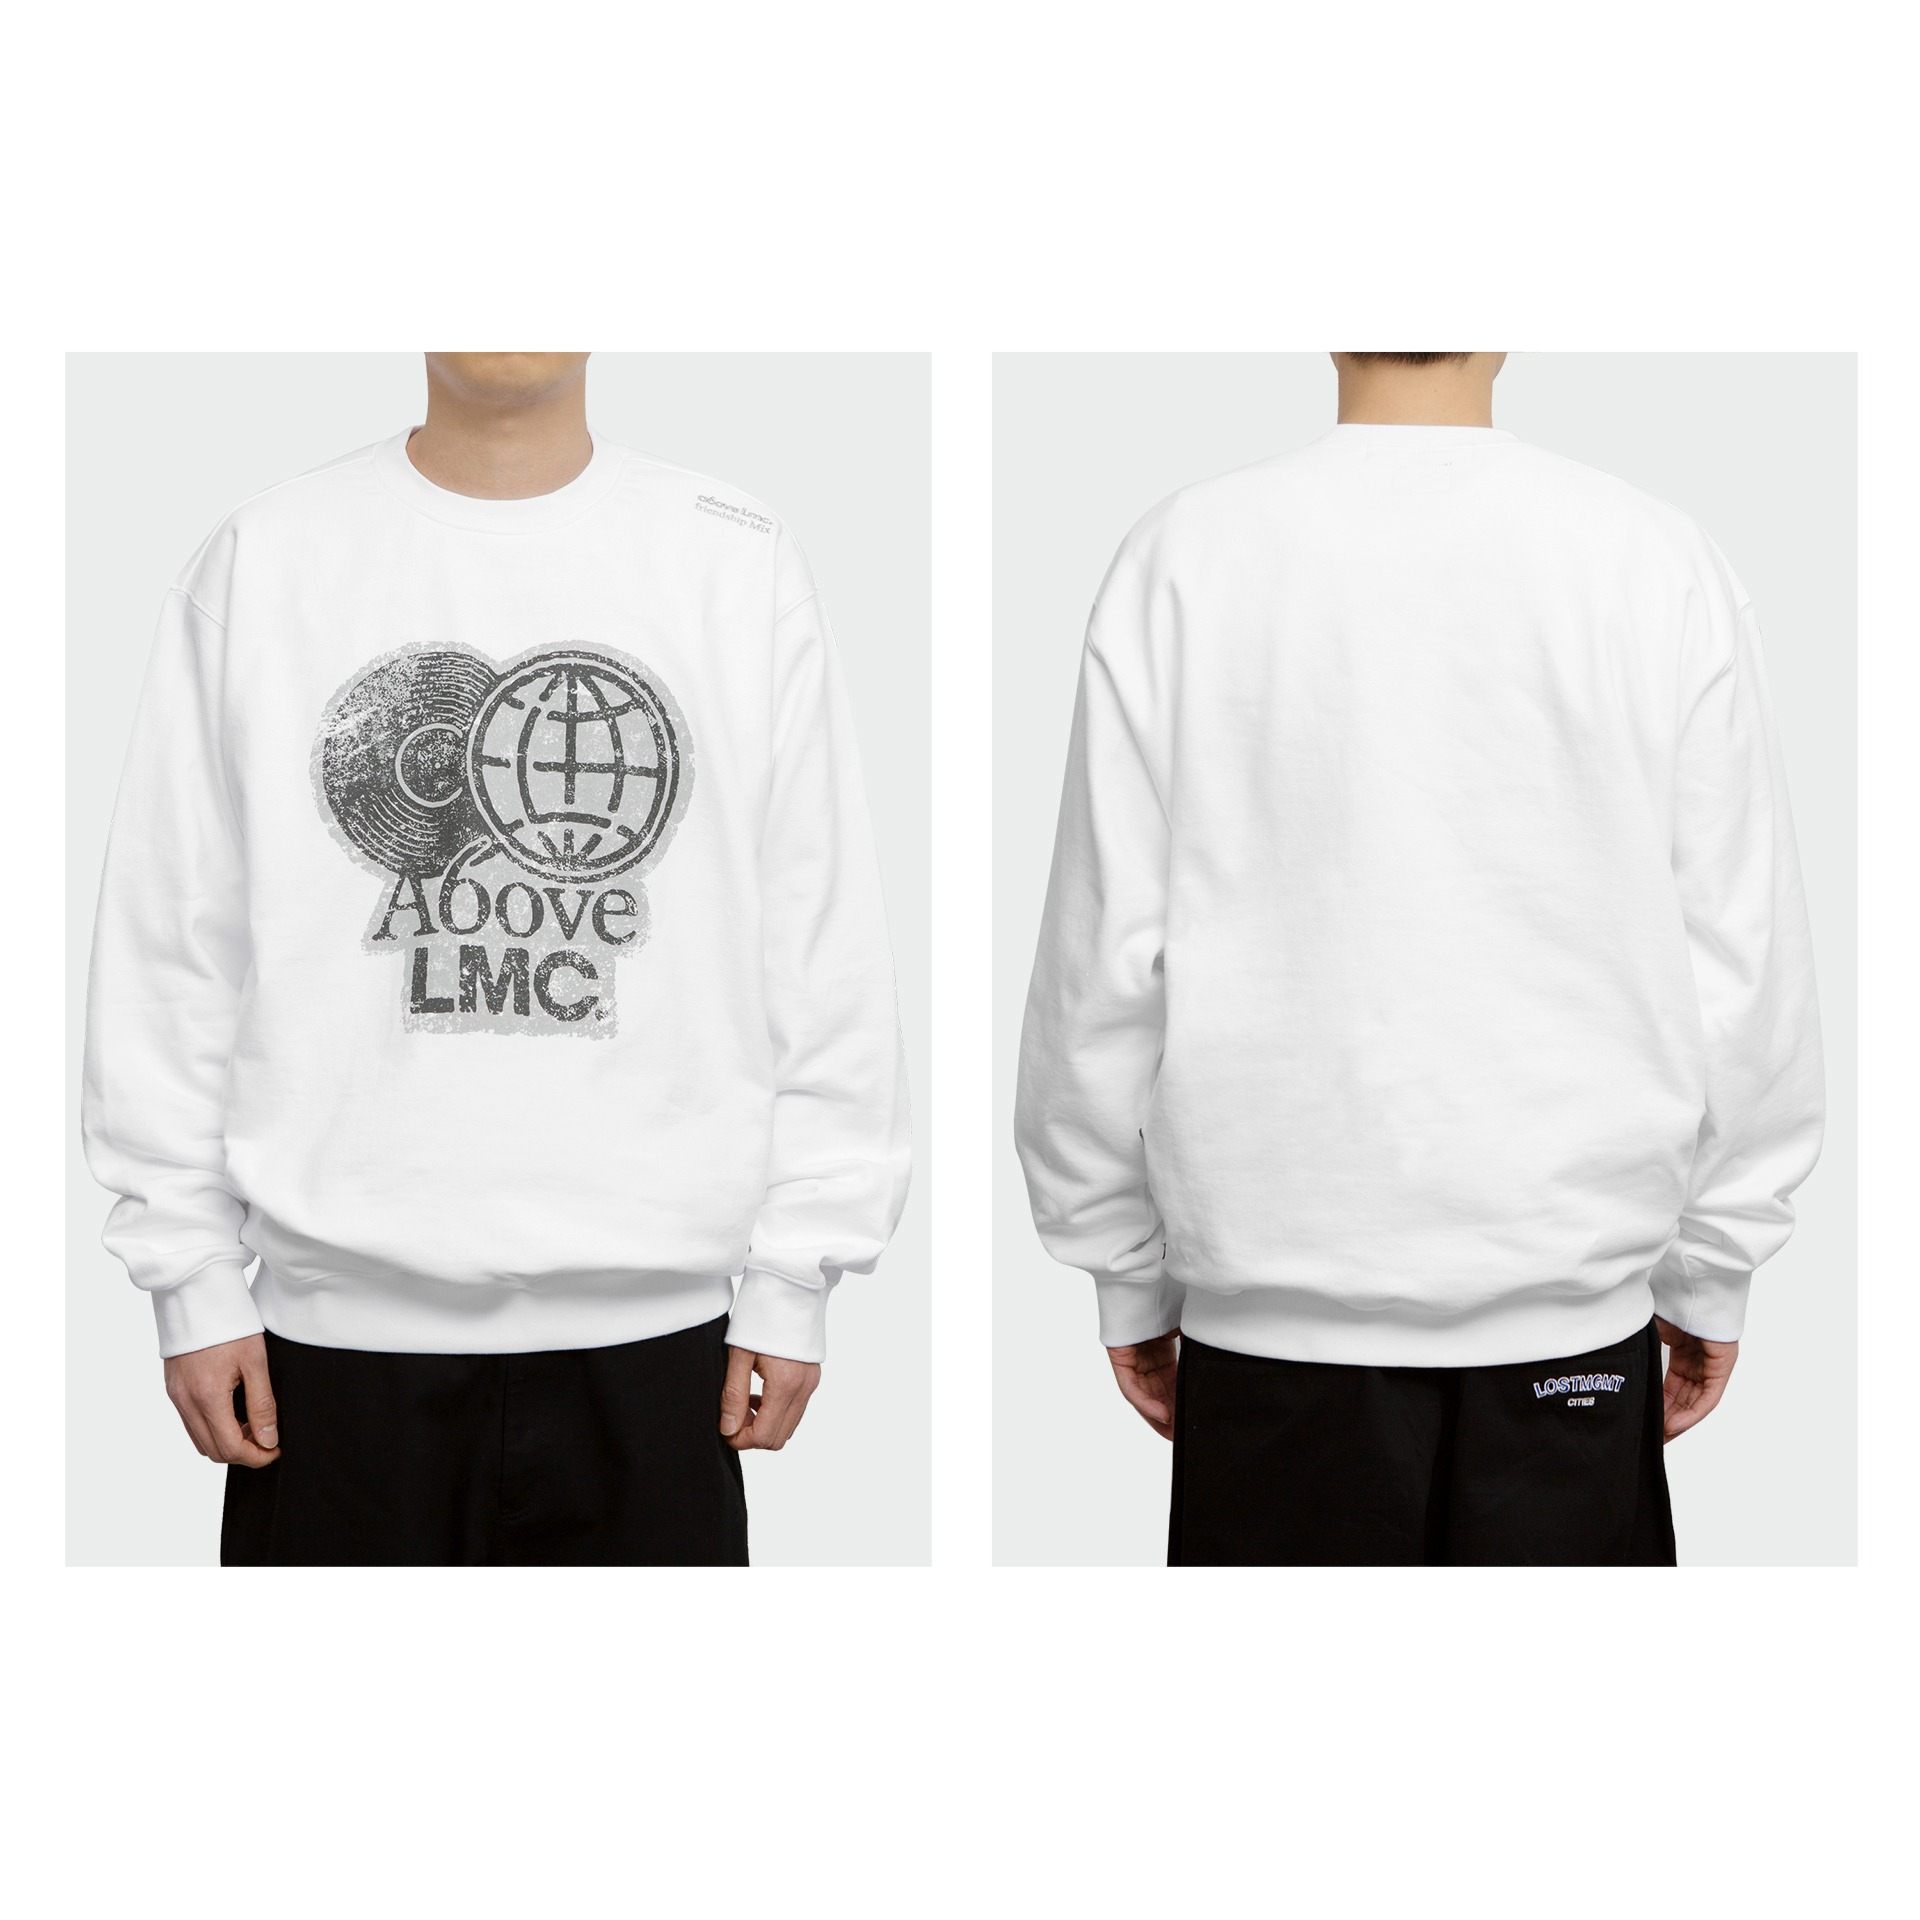 layer-LMC X A6OVE FRIENDSHIP MIX SWEATSHIRT white♡韓國男裝上衣